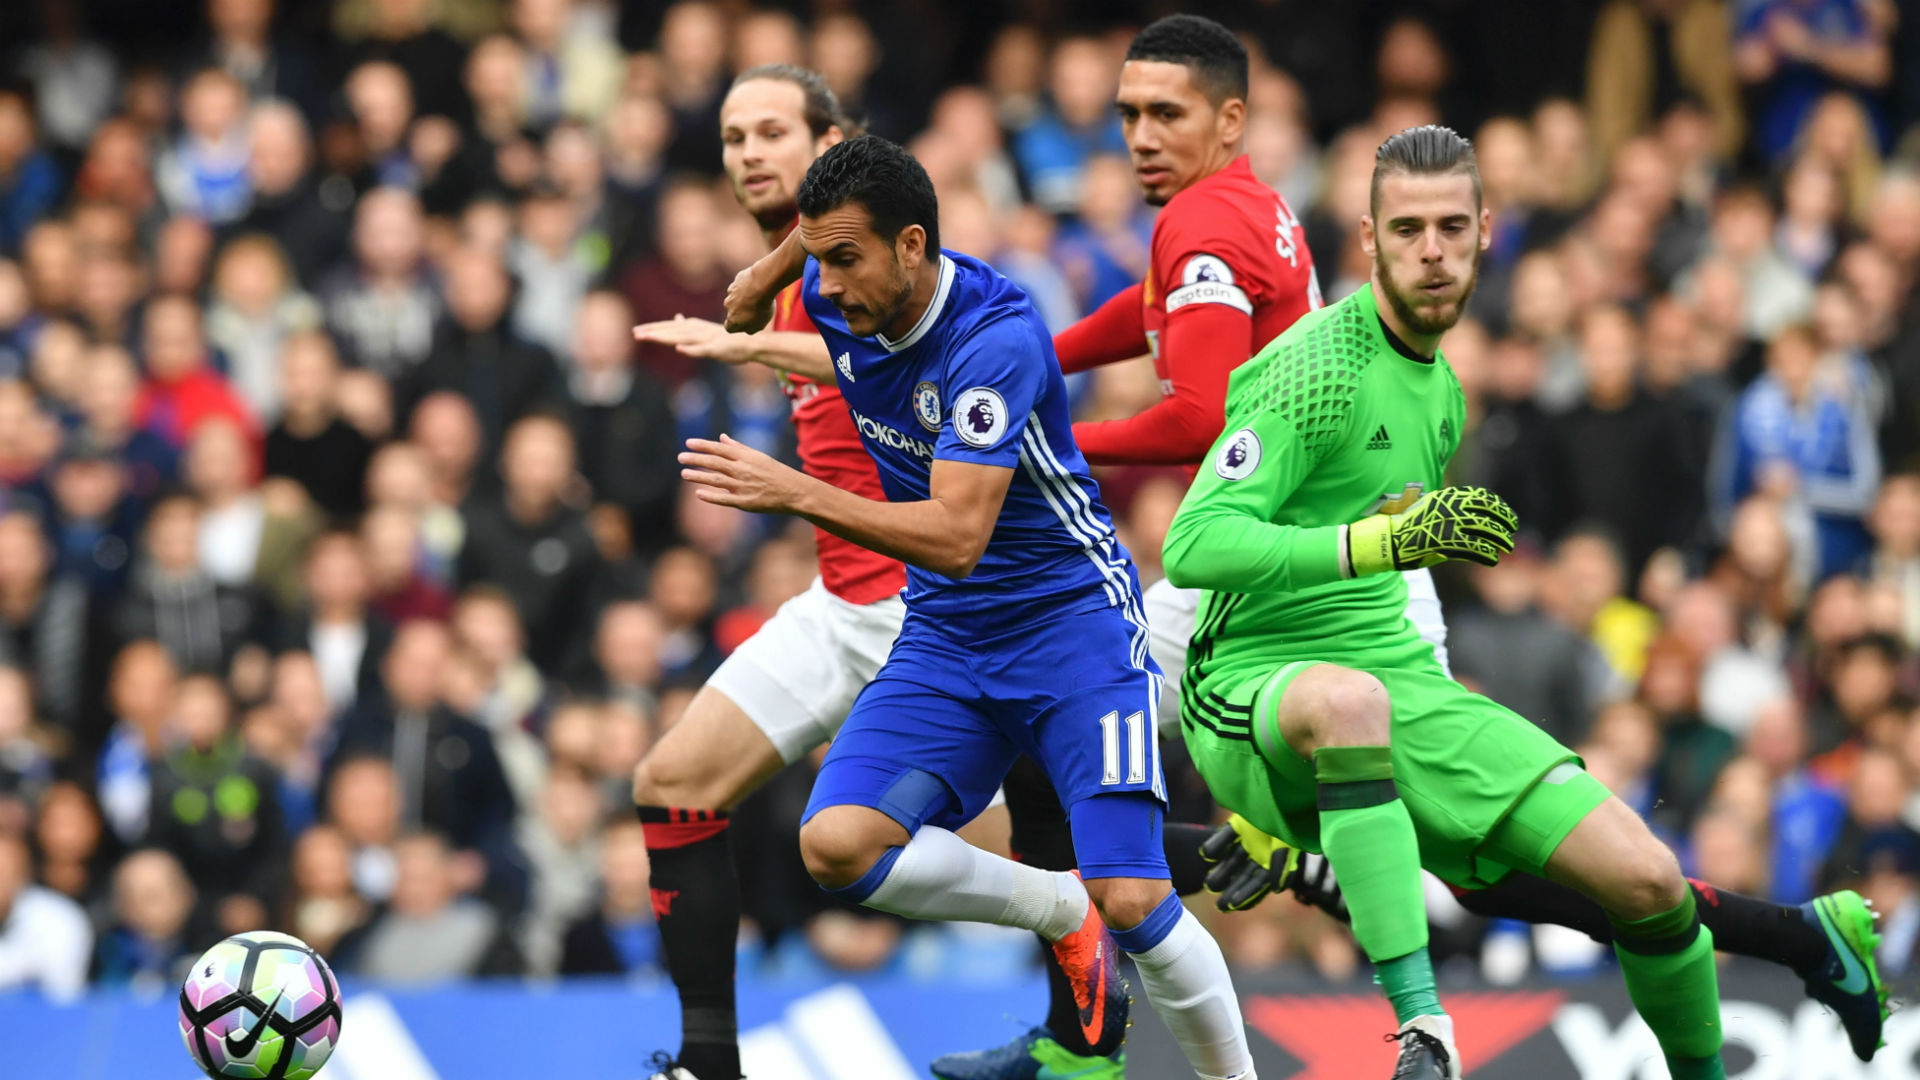 Pedro Premier League Chelsea v Man Utd 231016